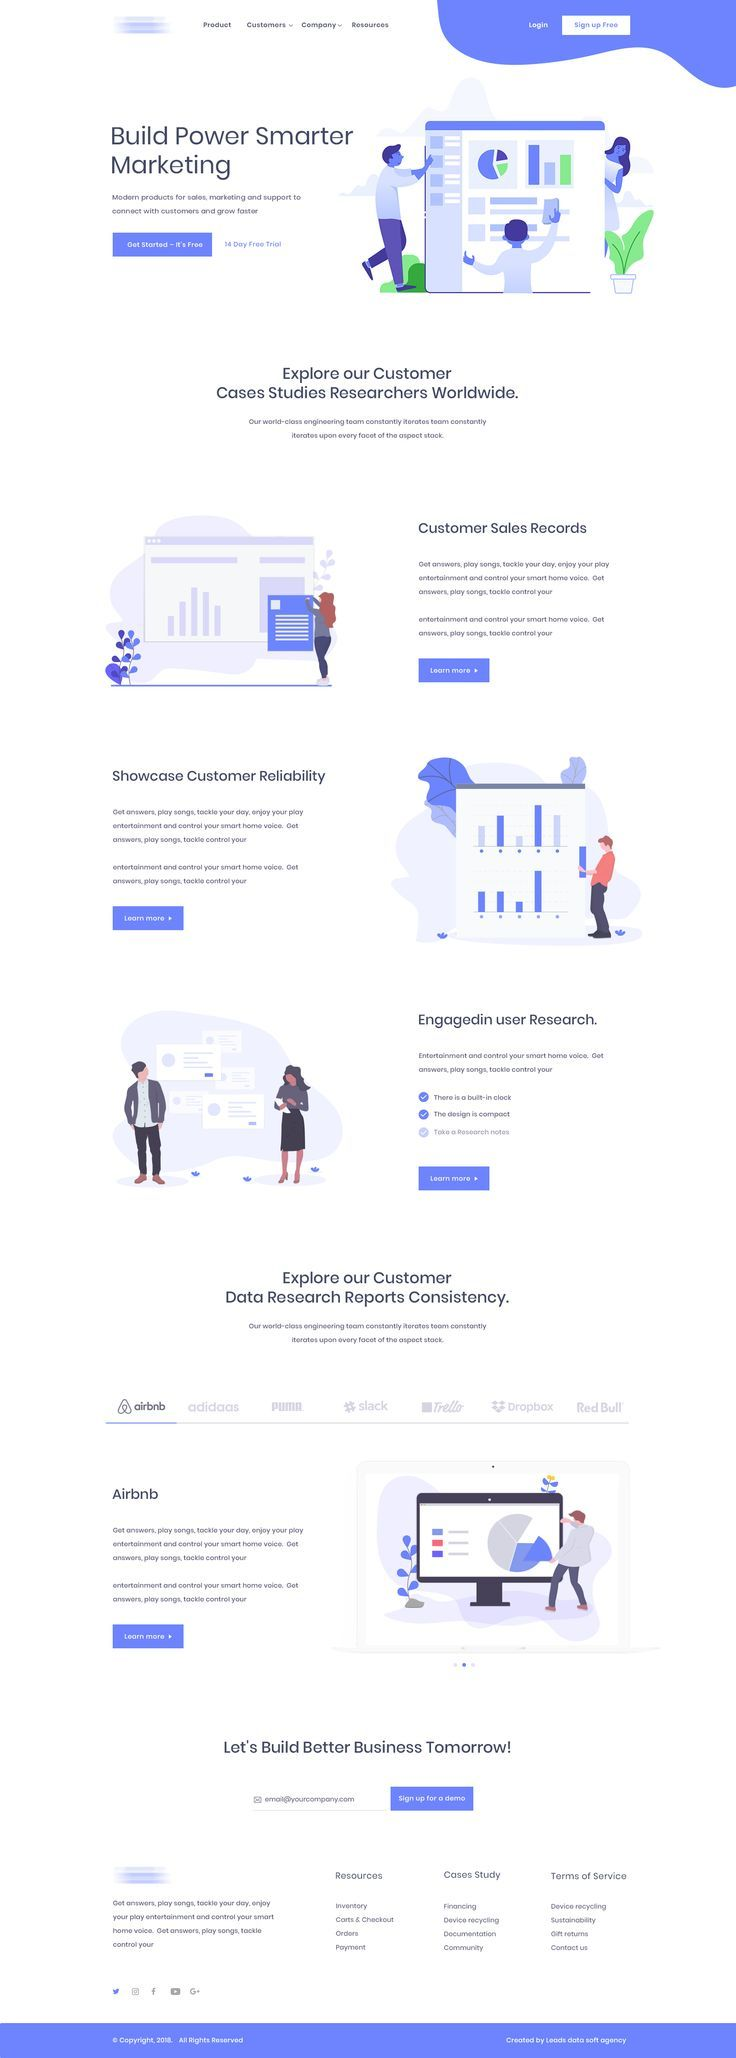 How To Design A Website The 4 Stages Process Web Design Web Design Services Web Design Trends